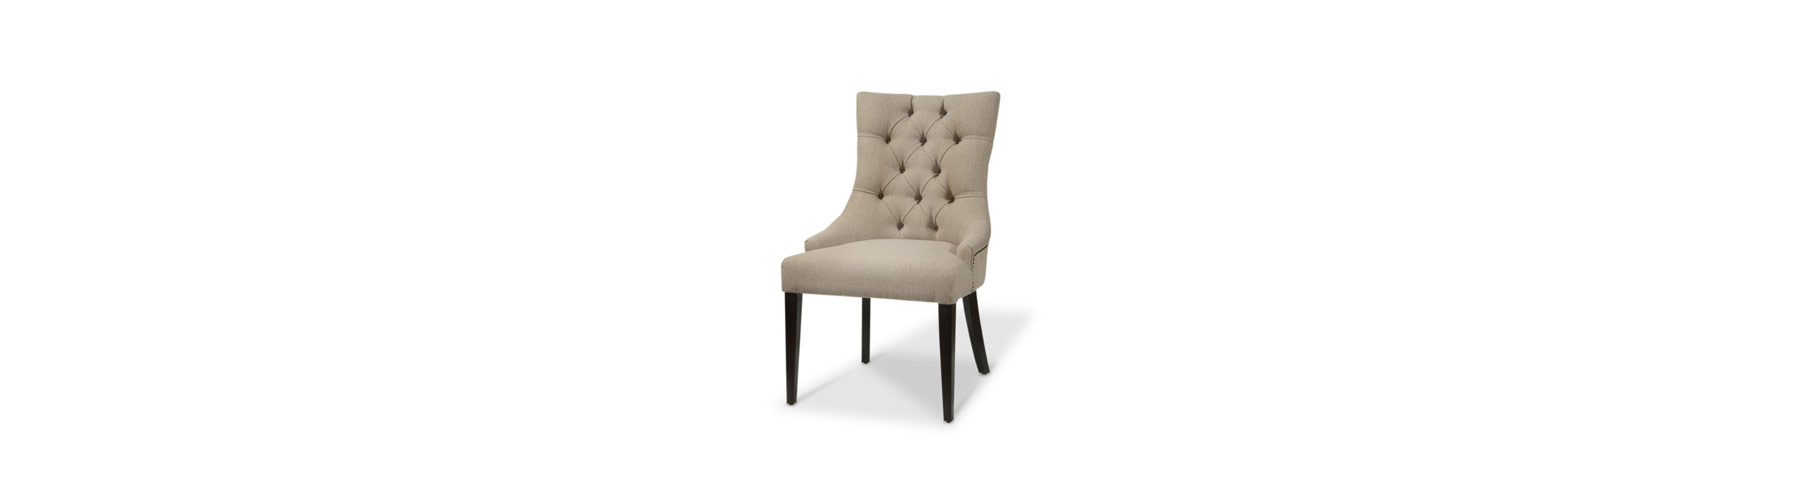 Melody avec bras - Chaise William